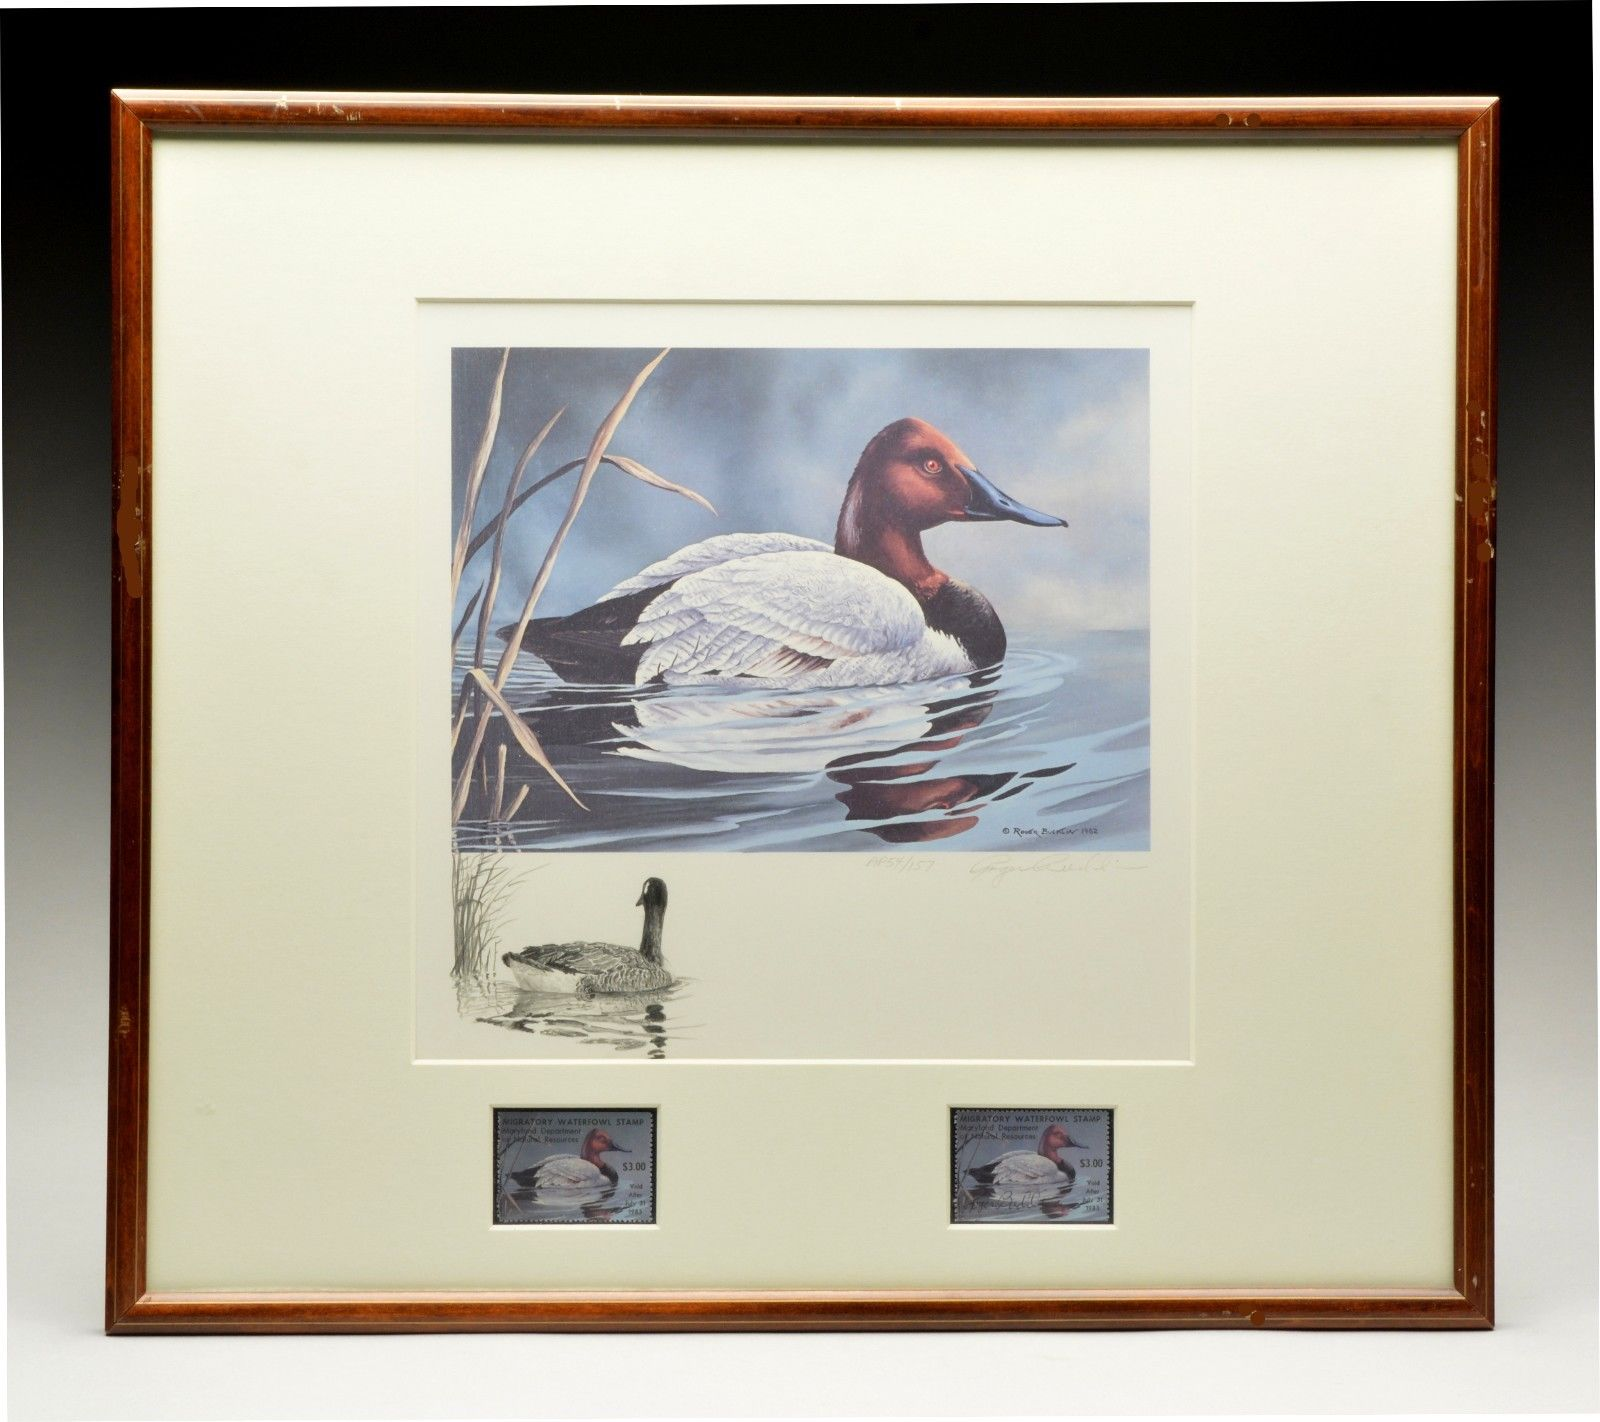 1982 RARE ARTIST PROOF MD WATERFOWL PRINT & REMARQUE by